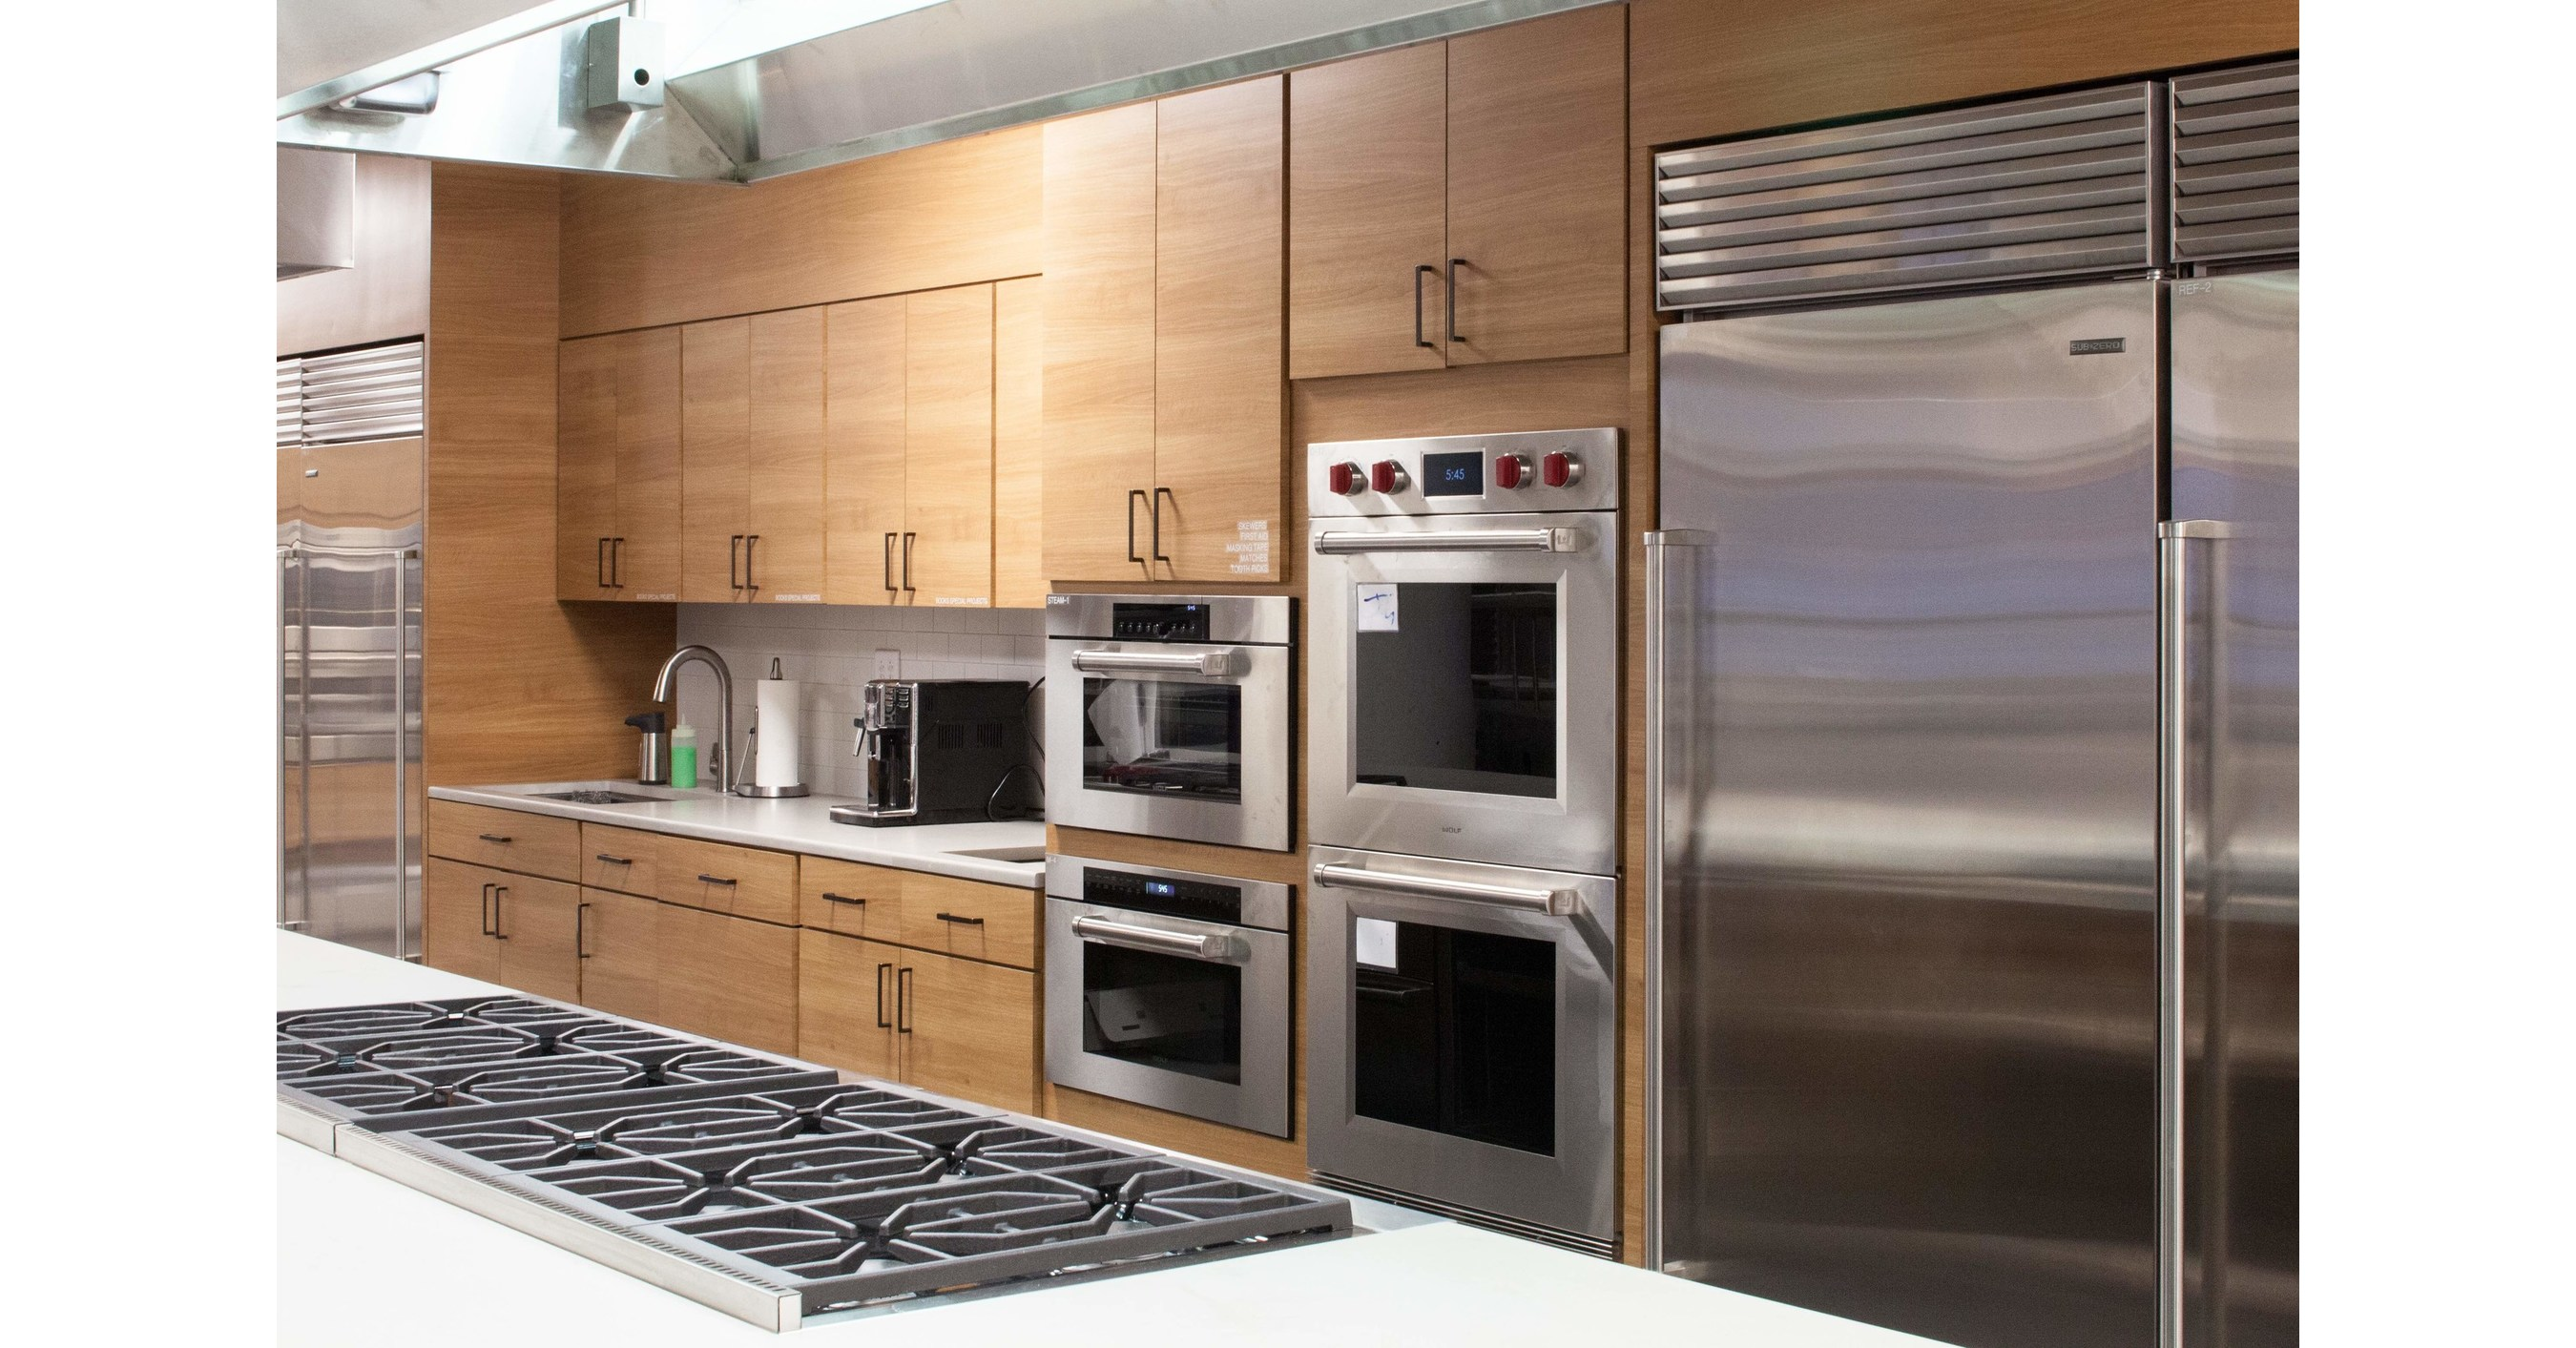 America's Test Kitchen Debuts New Kitchen Space With. Country Kitchen Cabinets For Sale. Kitchen Table Designs Plans. Kitchen Garden Ideas Pictures. Kitchen Ideas Home Hardware. Kitchen Rug Fruit. Kitchen Appliances Yangon. Rustic Kitchen Gallery. Kitchen Cupboards Homebase